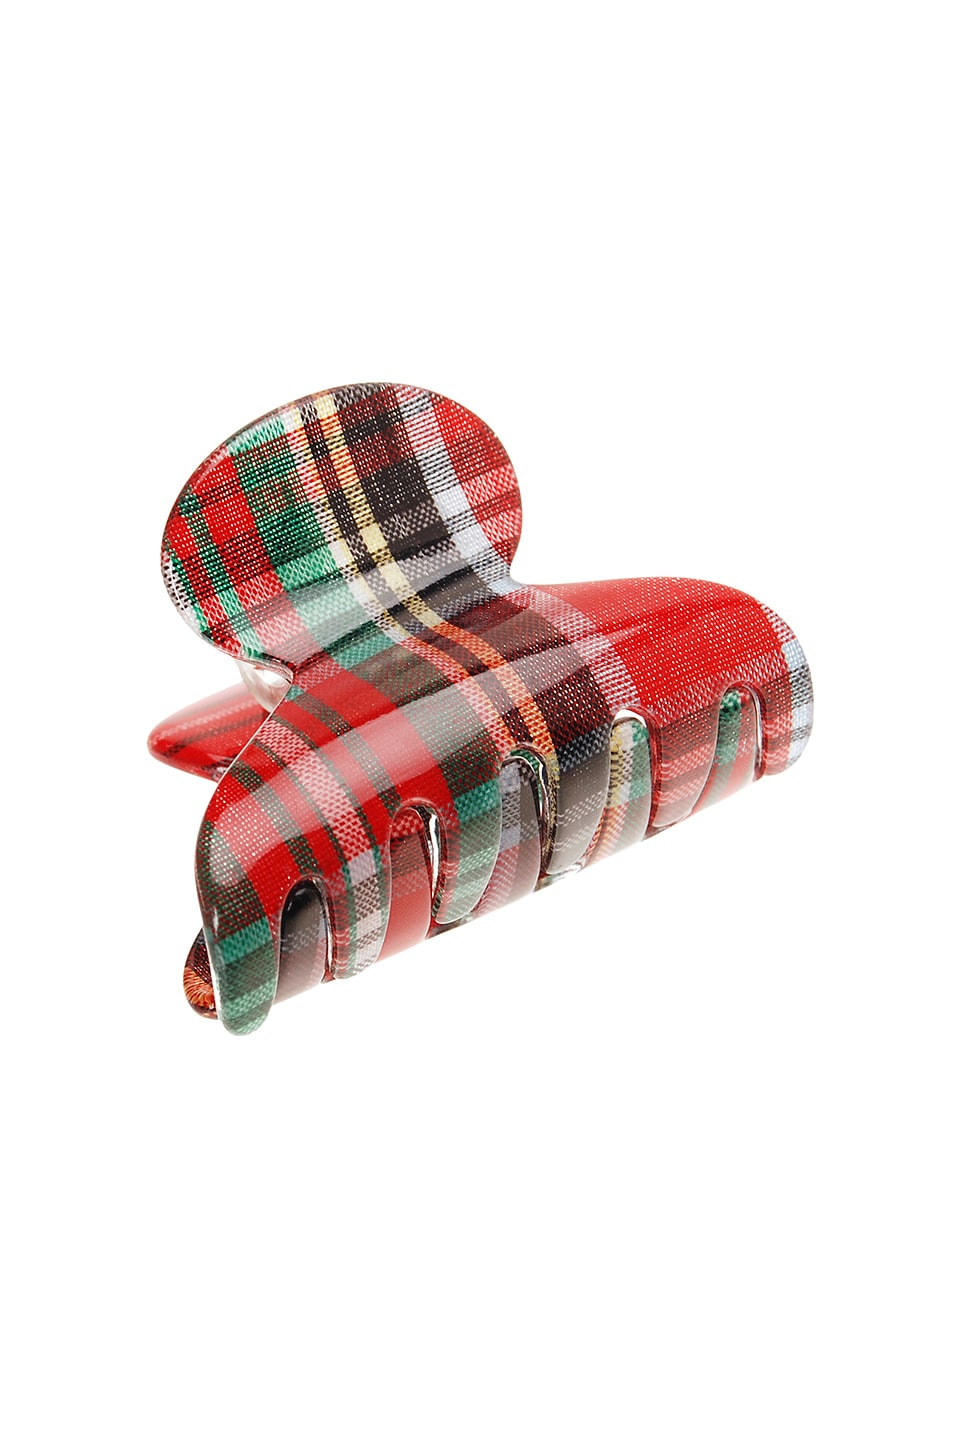 France Luxe Mini Couture Jaw in Tartan Plaid Red & Green